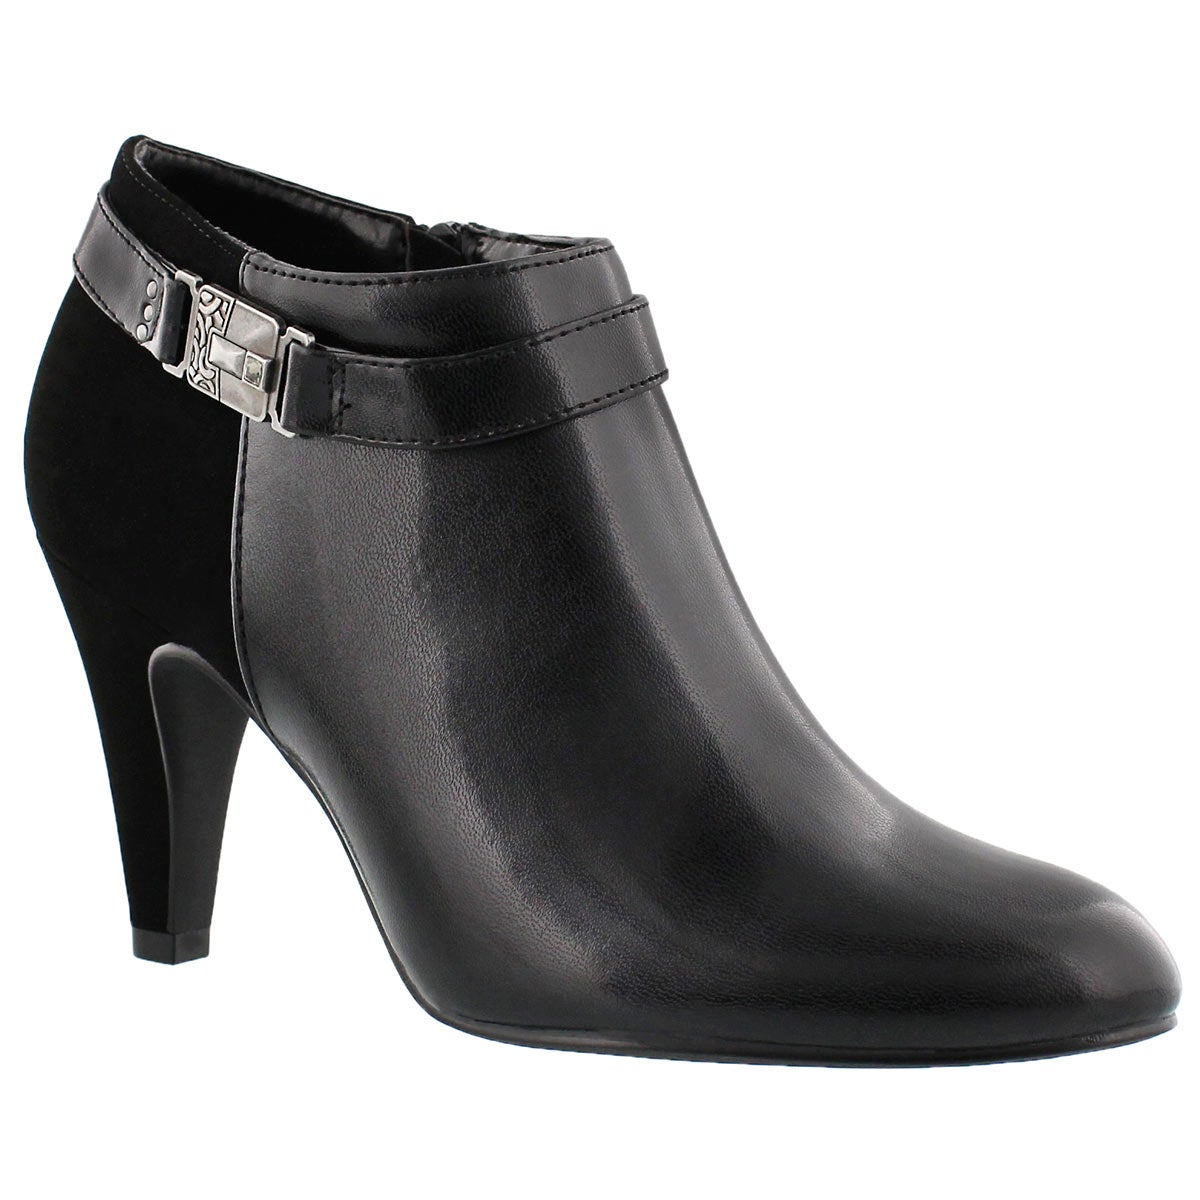 Lds Darci black buckle dress bootie